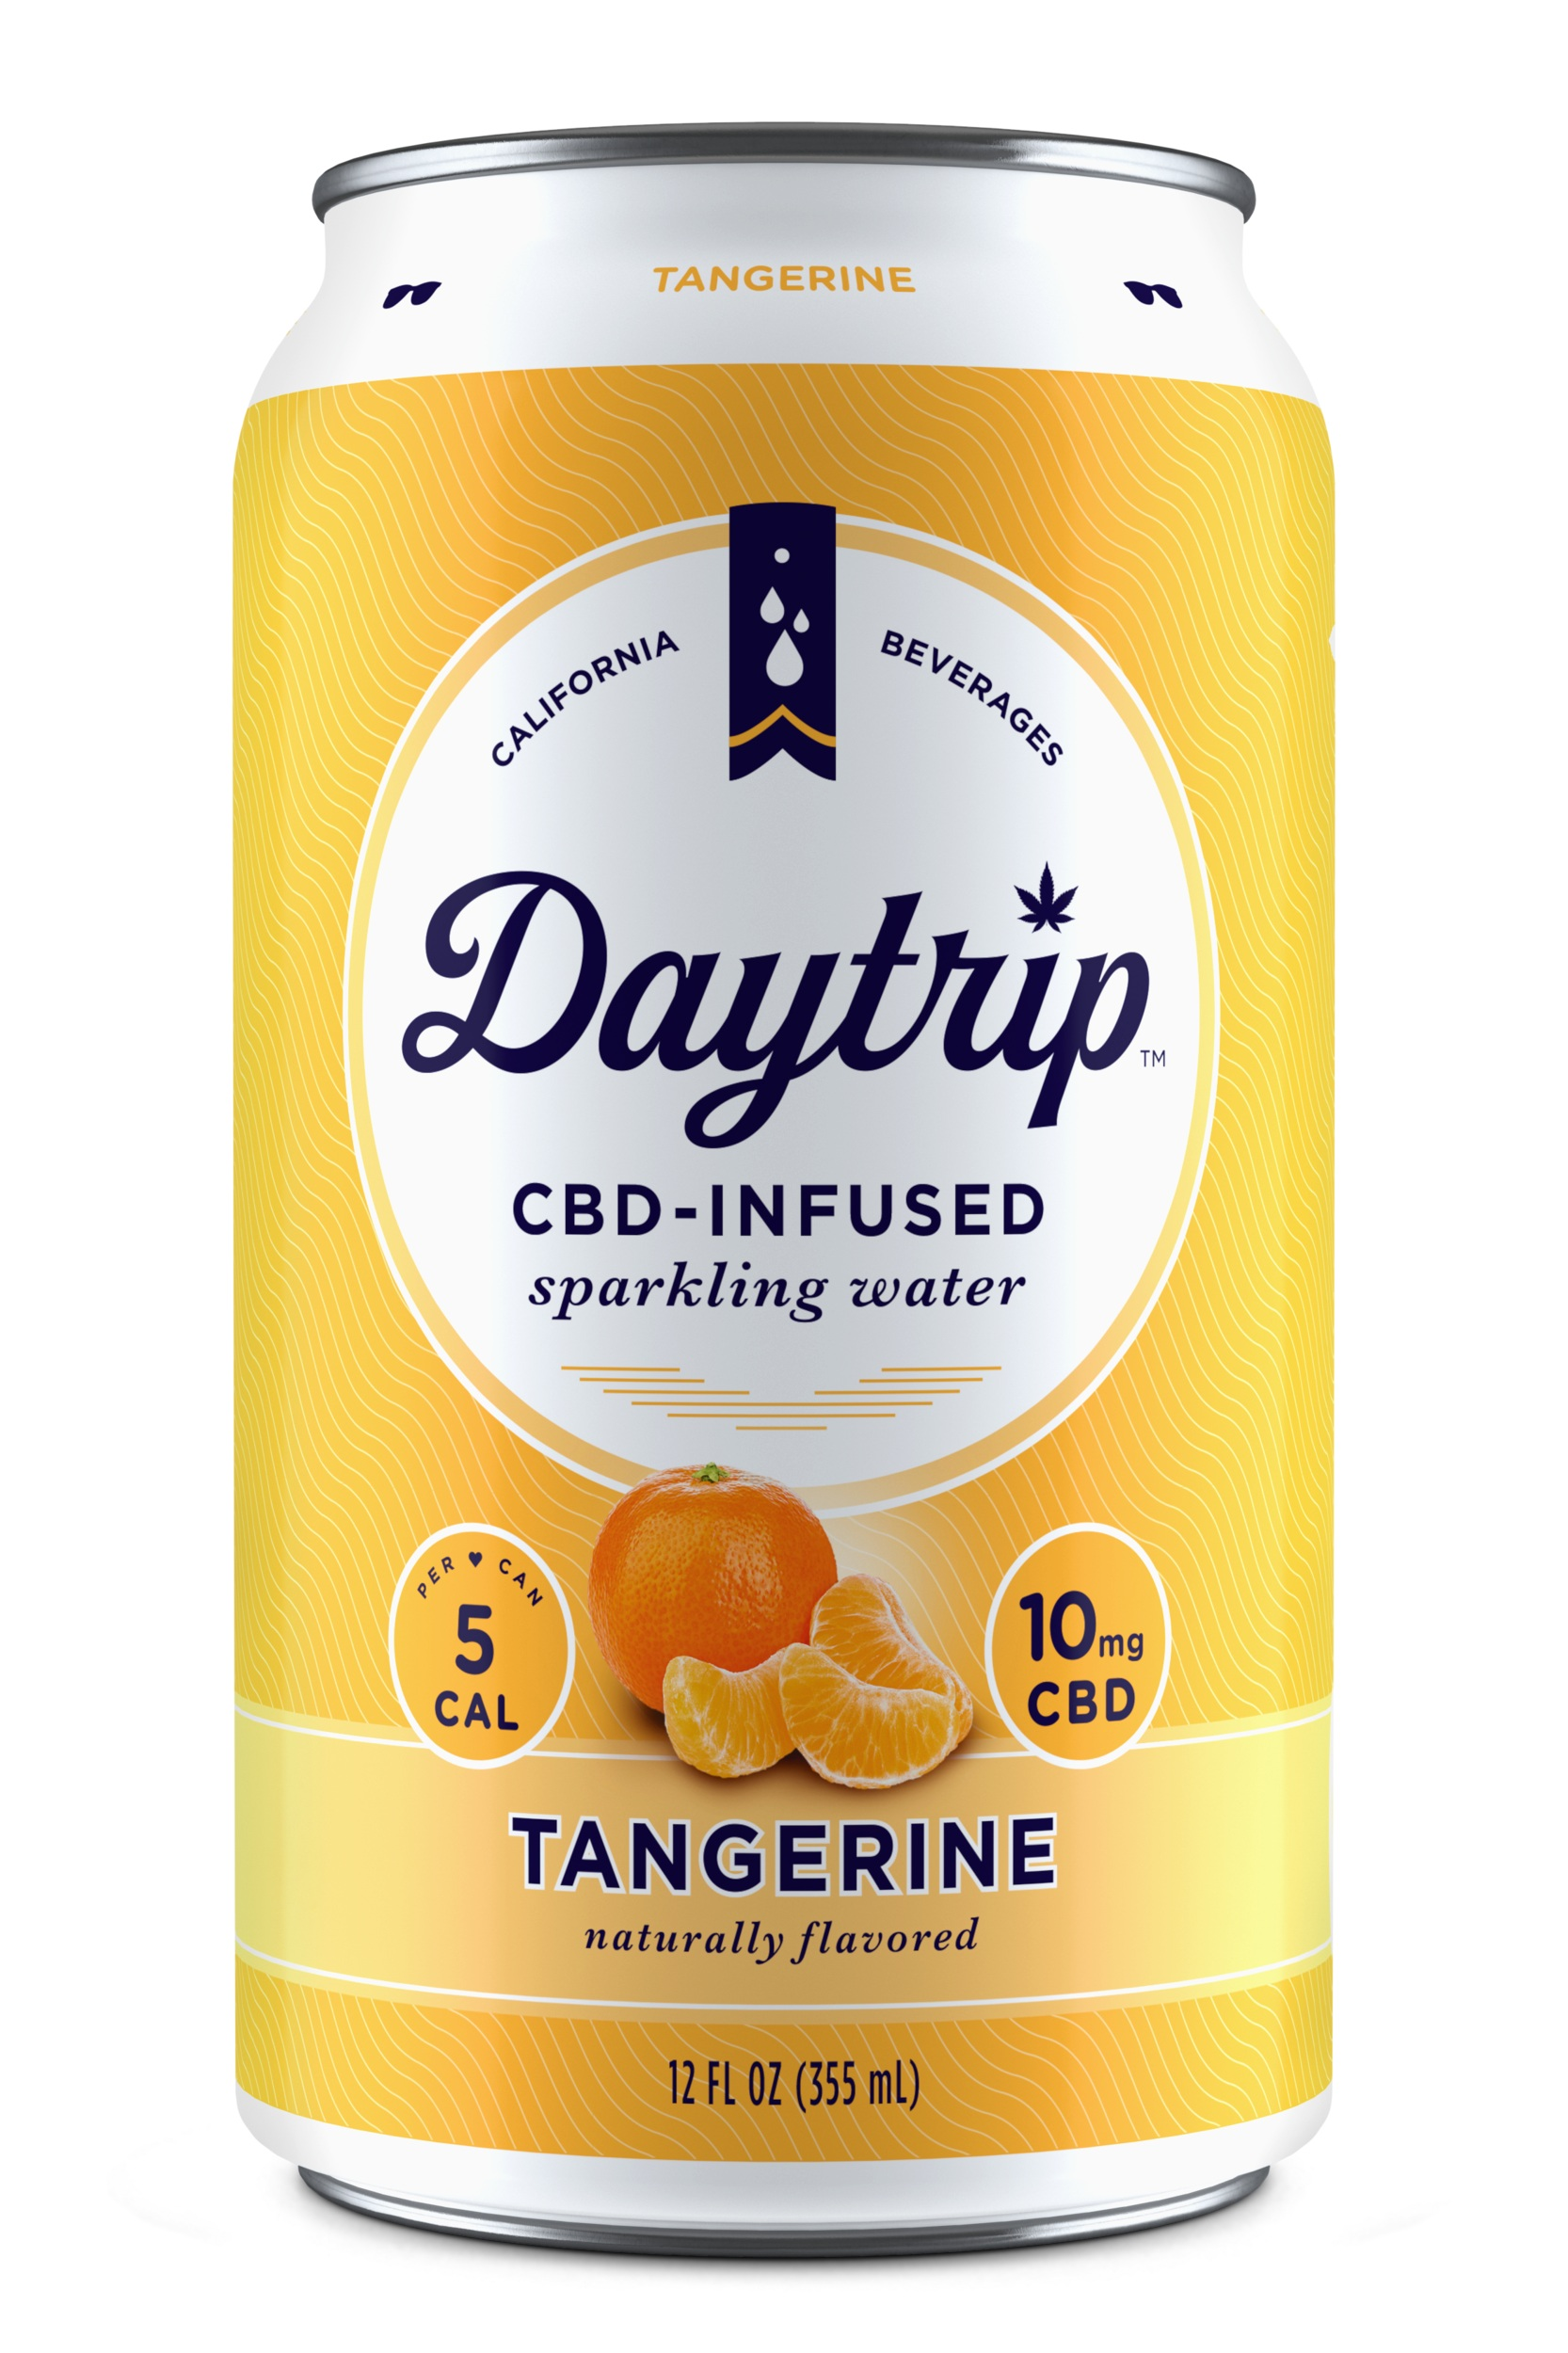 Daytrip Tangerine CBD Infused Sparkling Water